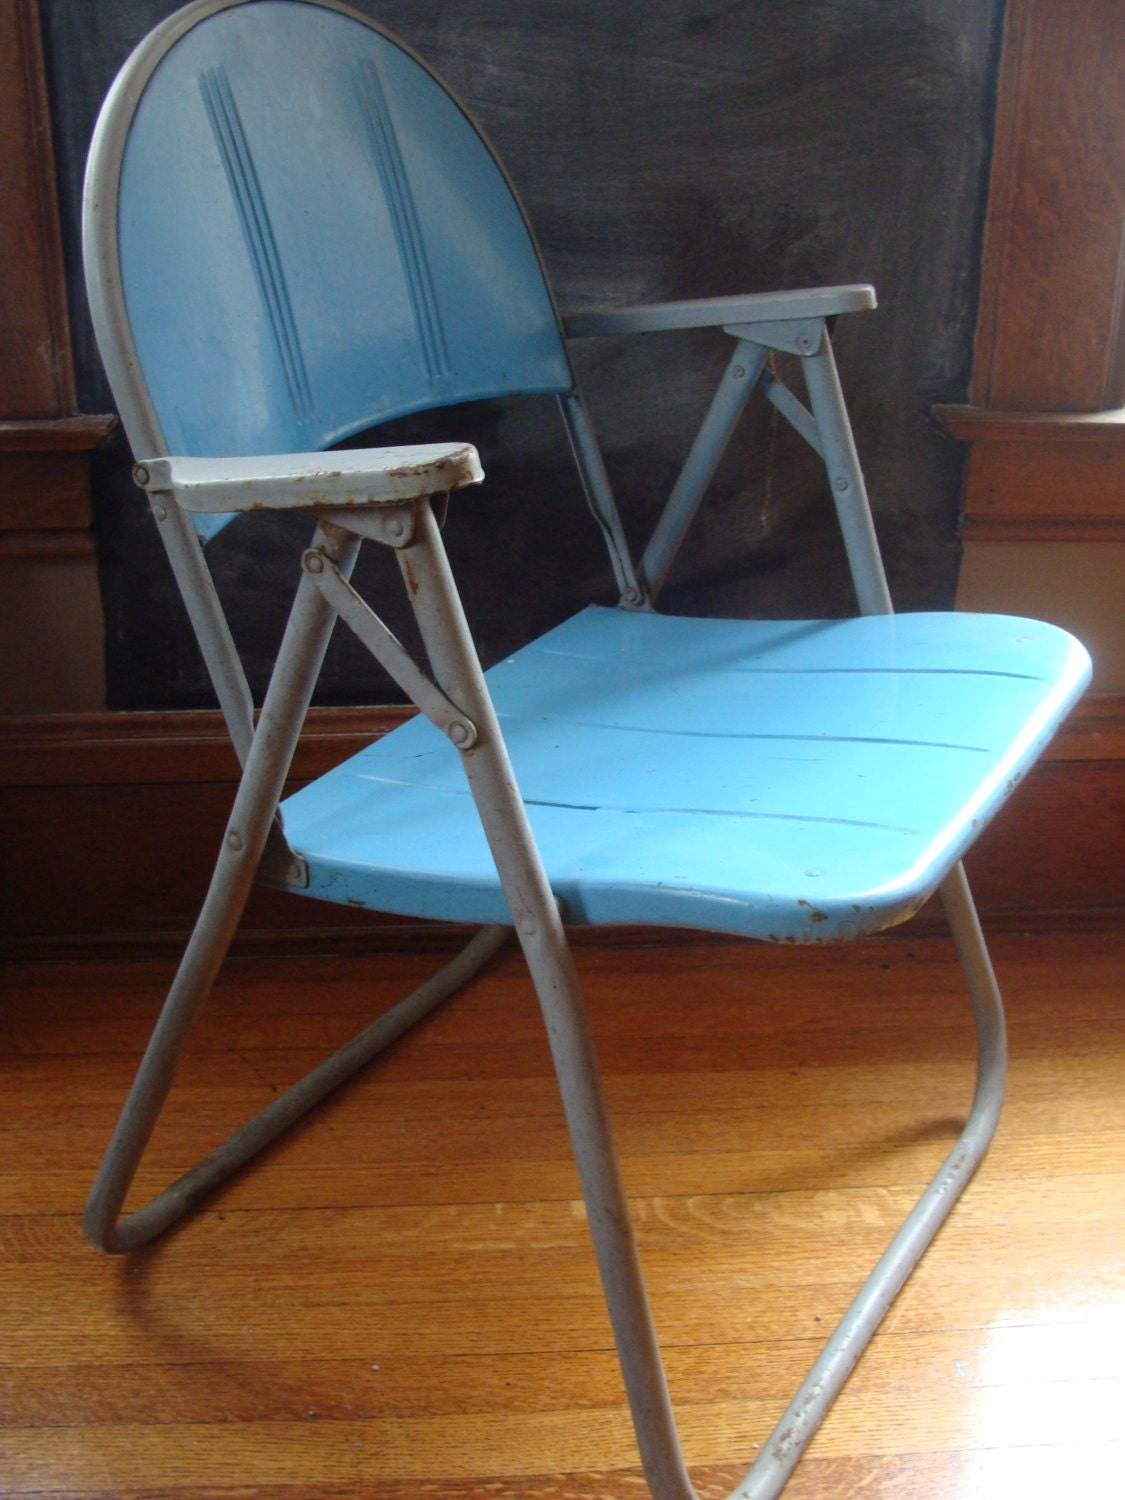 vintage metal chair folding lawn chair by macandmarys on Etsy